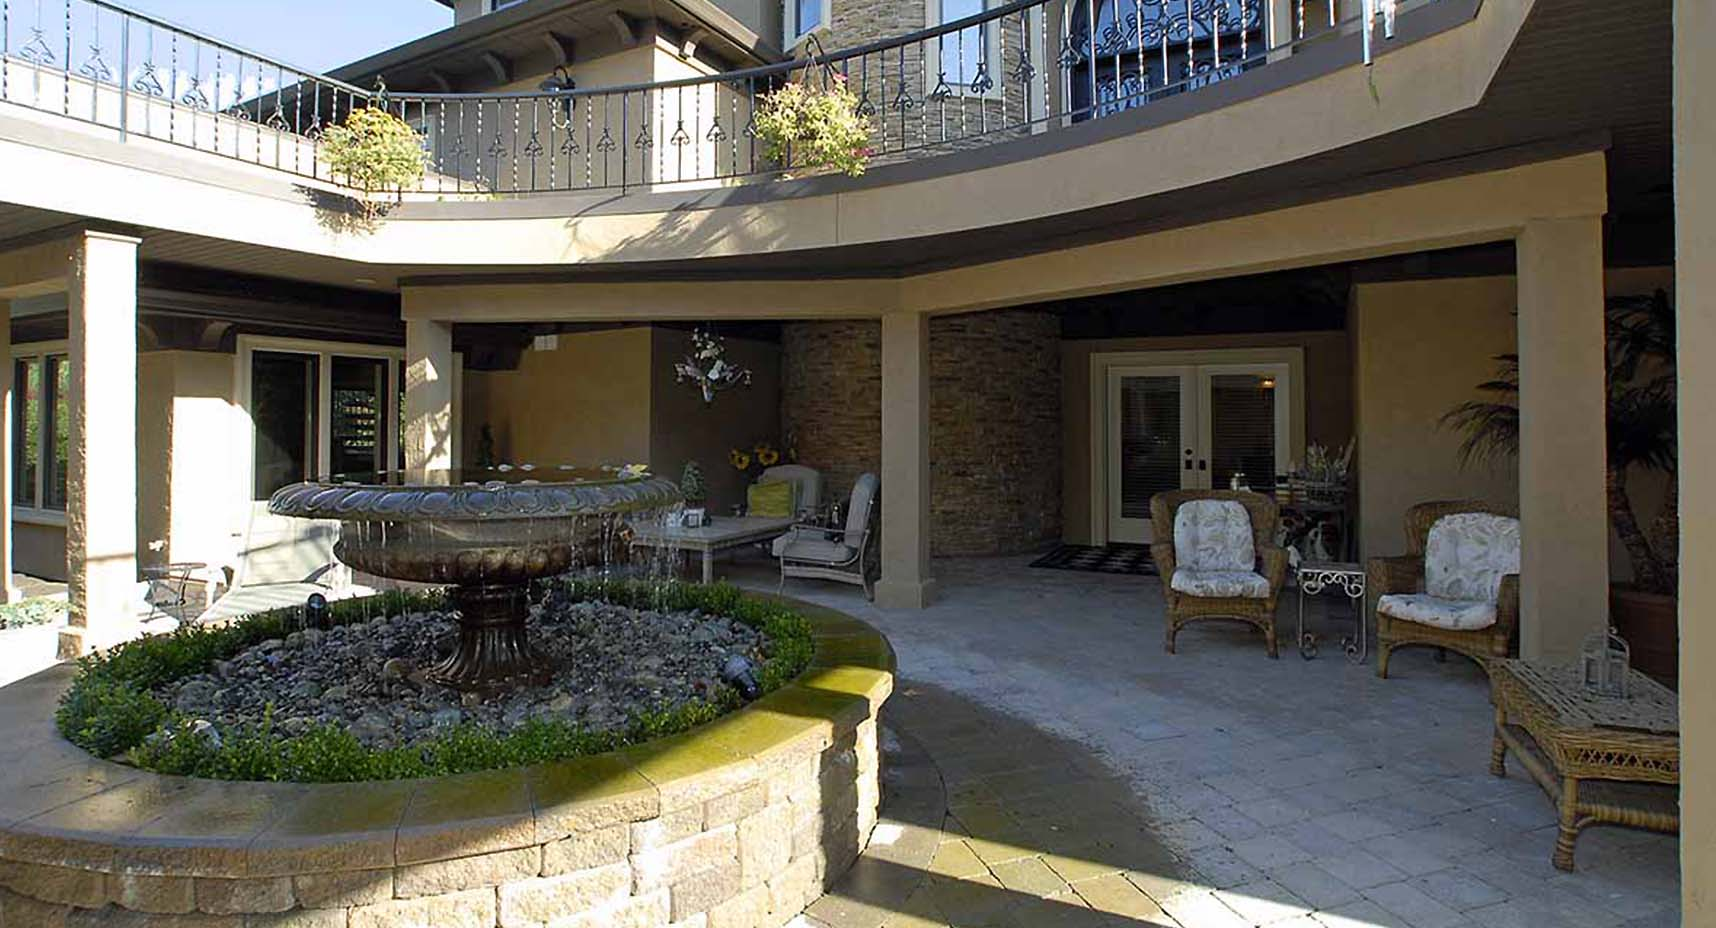 Lake Washington home exterior reconstruction and remodeling services - town construction and development